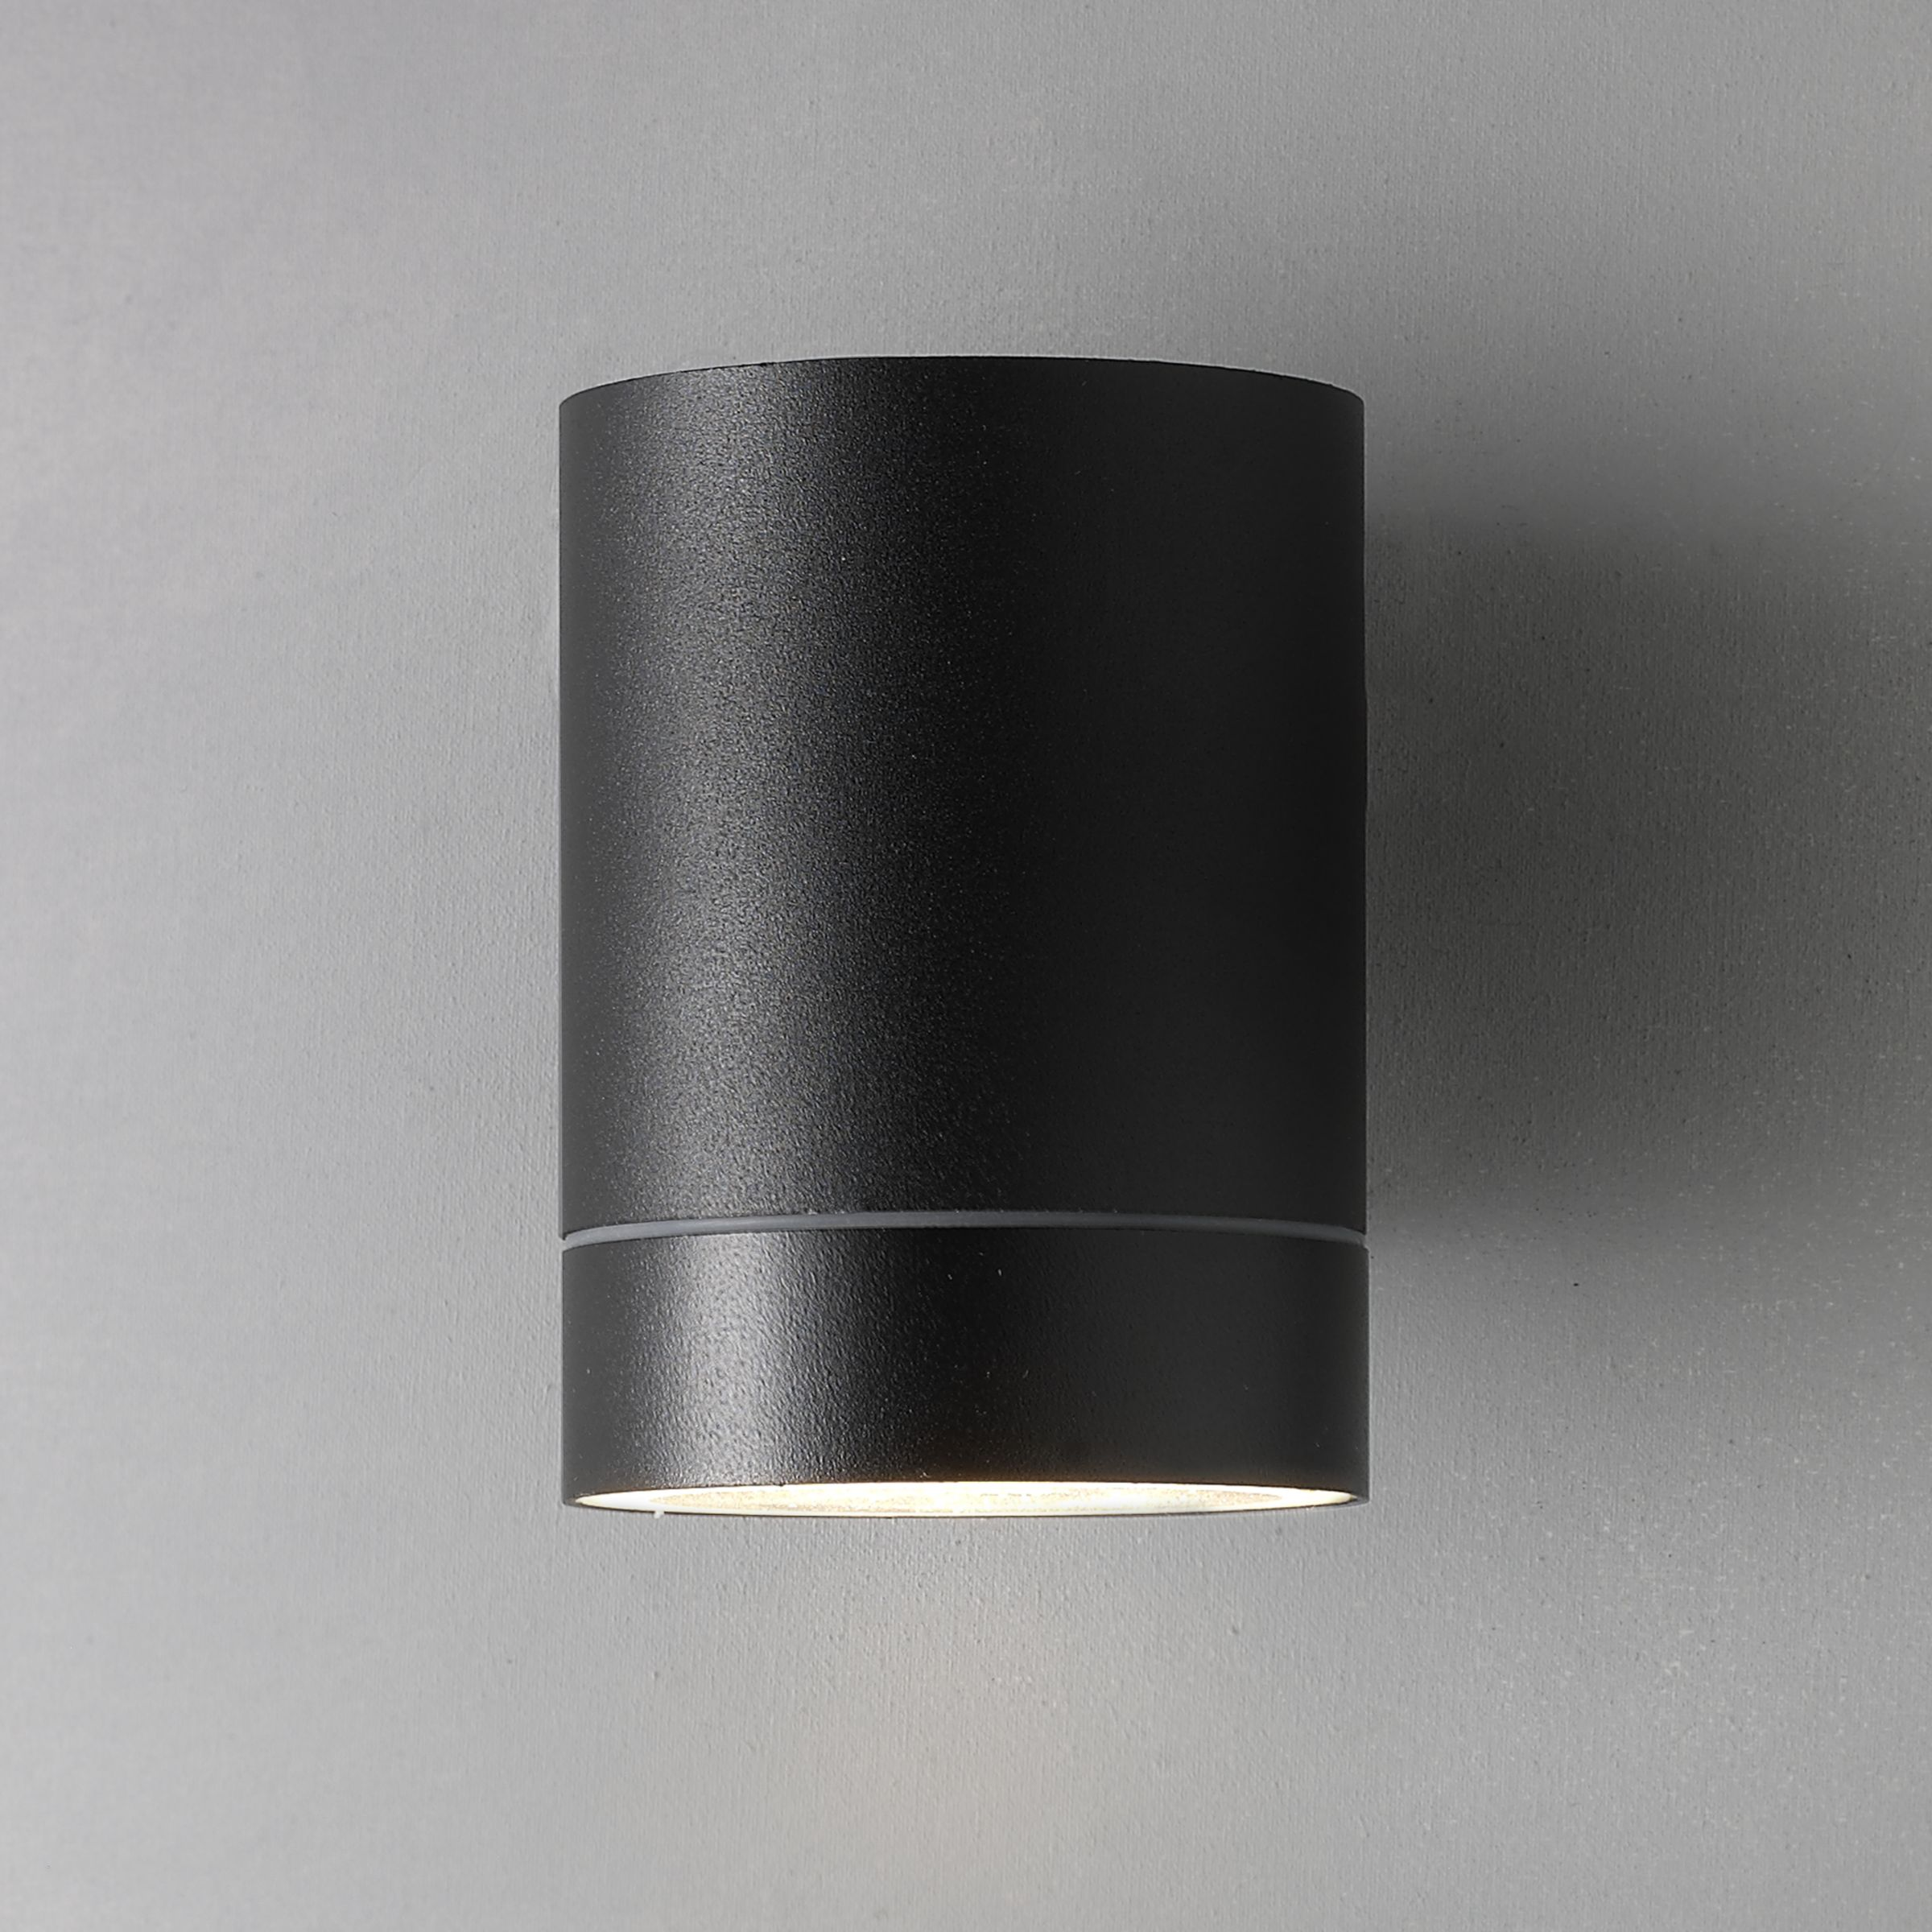 Nordlux Nordlux Tin Maxi Outdoor Wall Light, Black